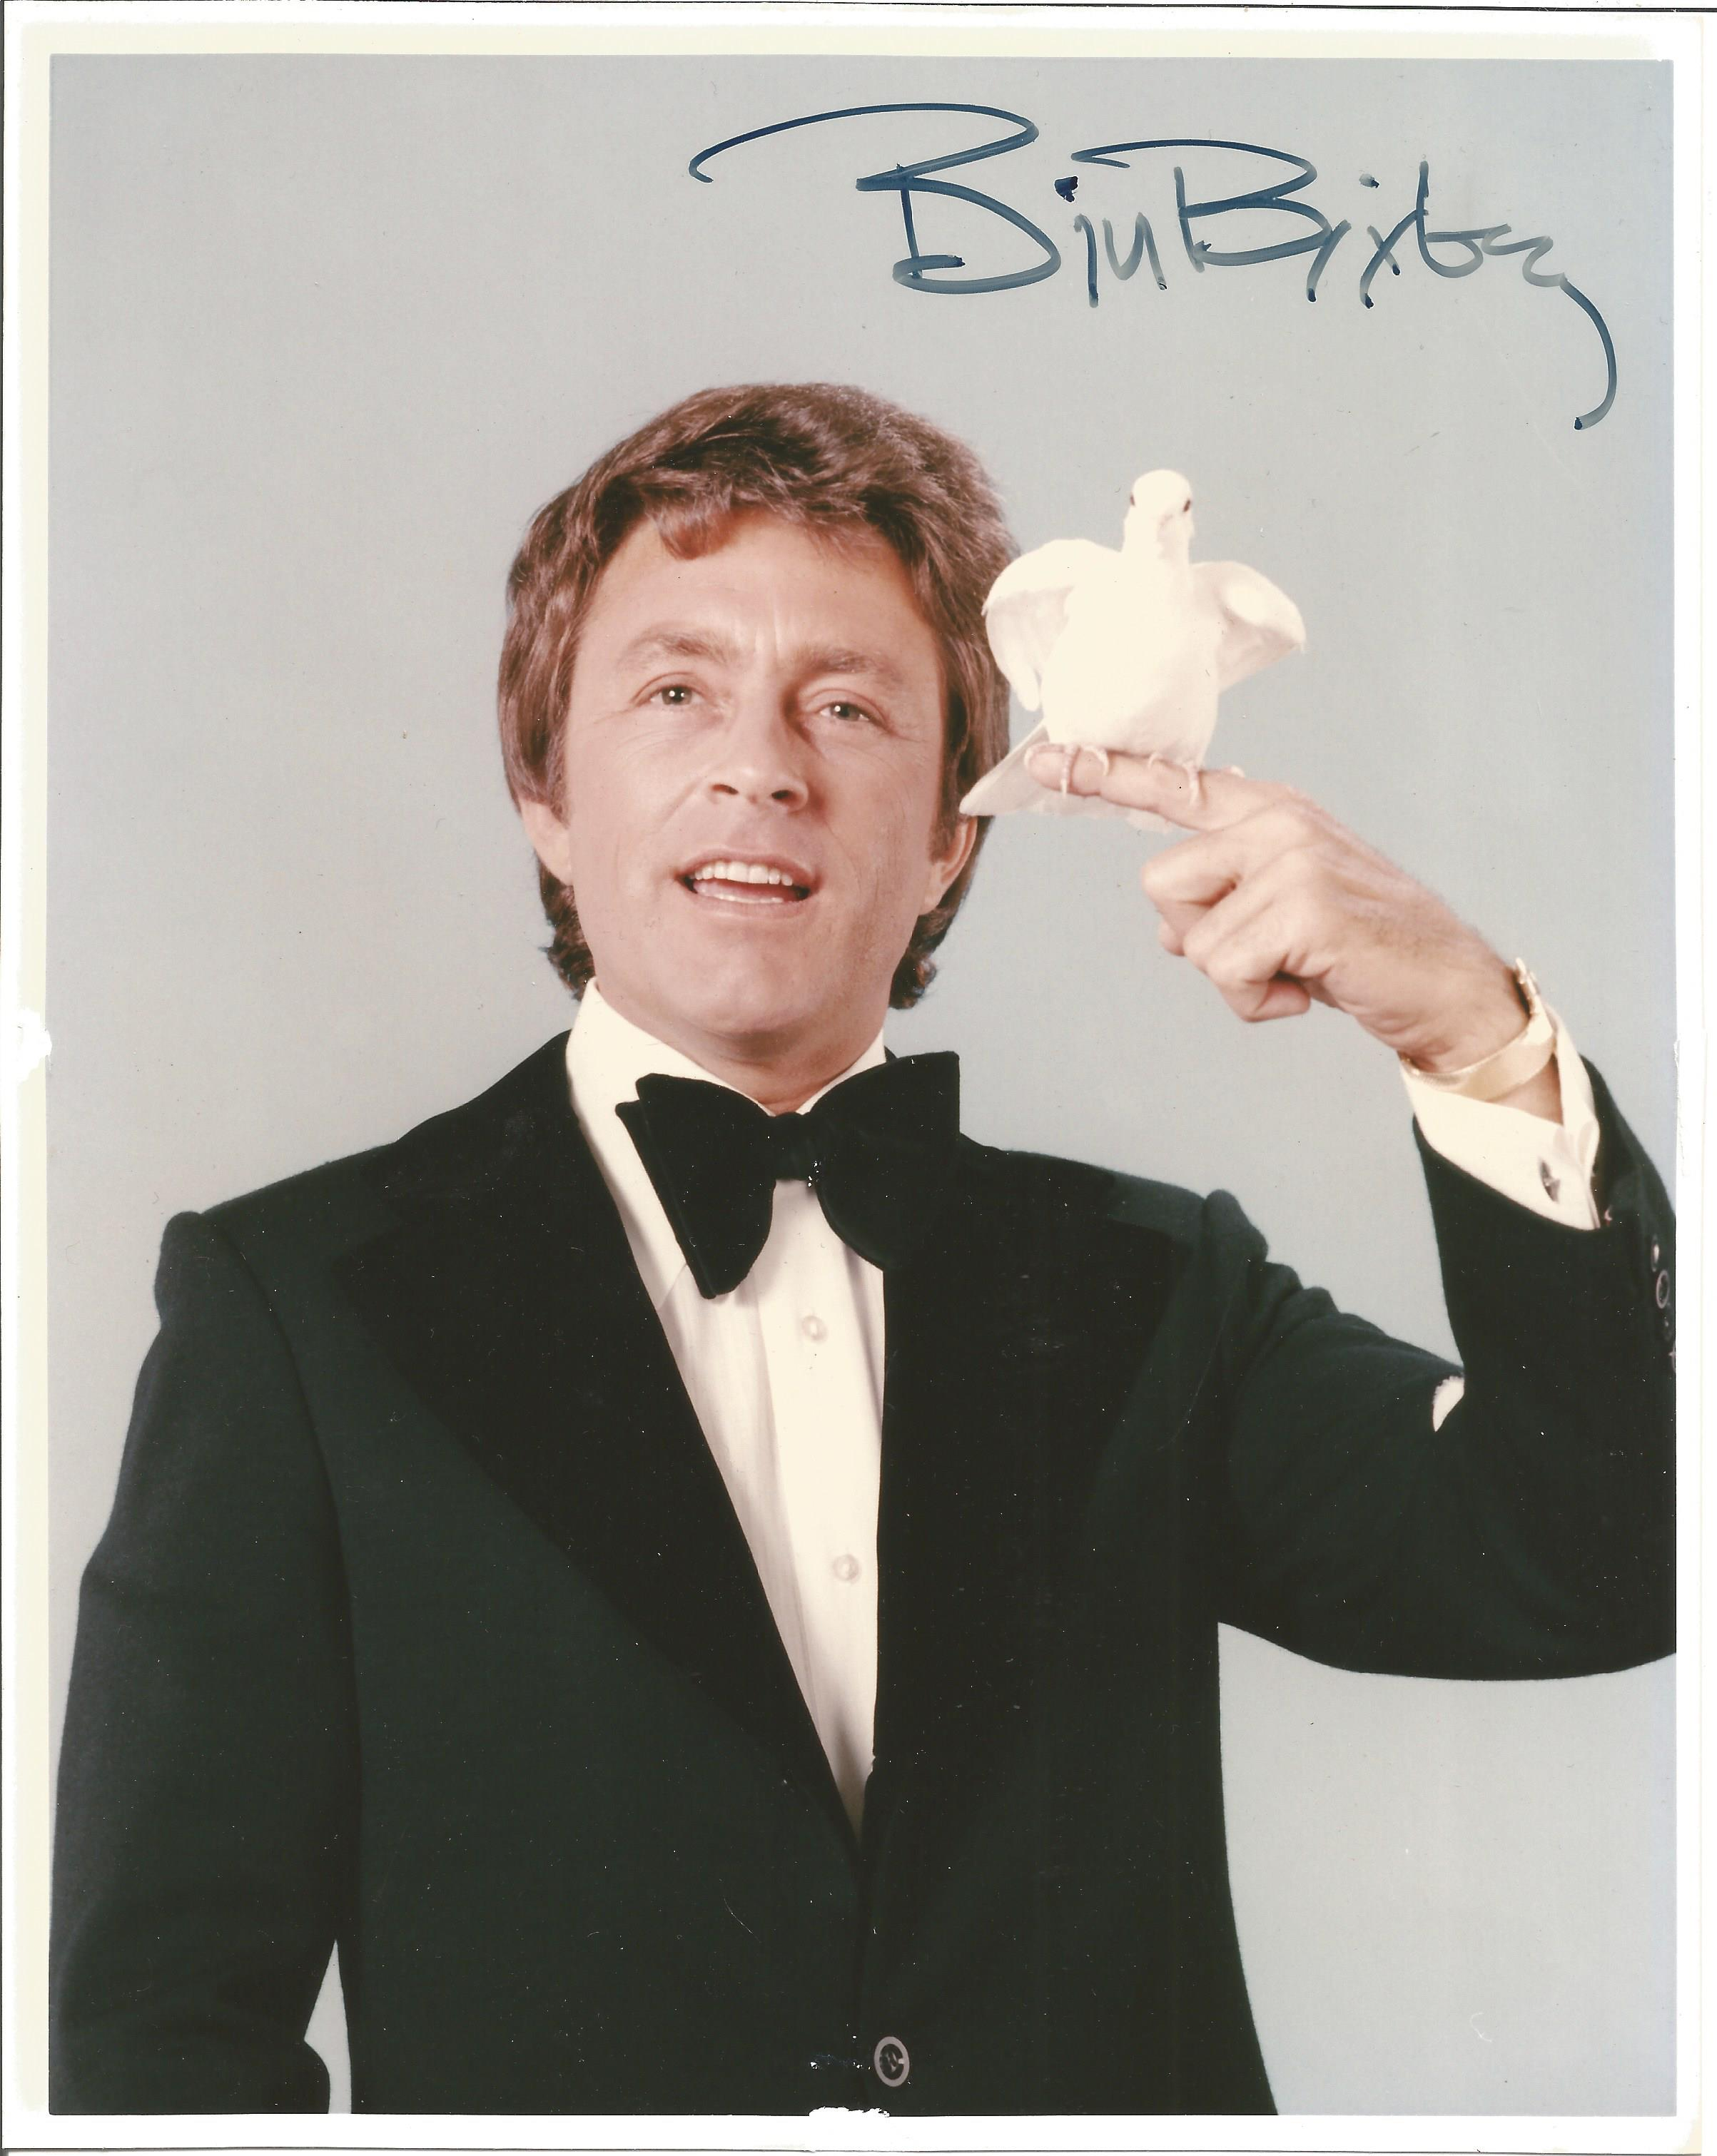 Entertainer Bill Bixby signed 10x8 colour photo. Bill Bixby was an American actor, director,